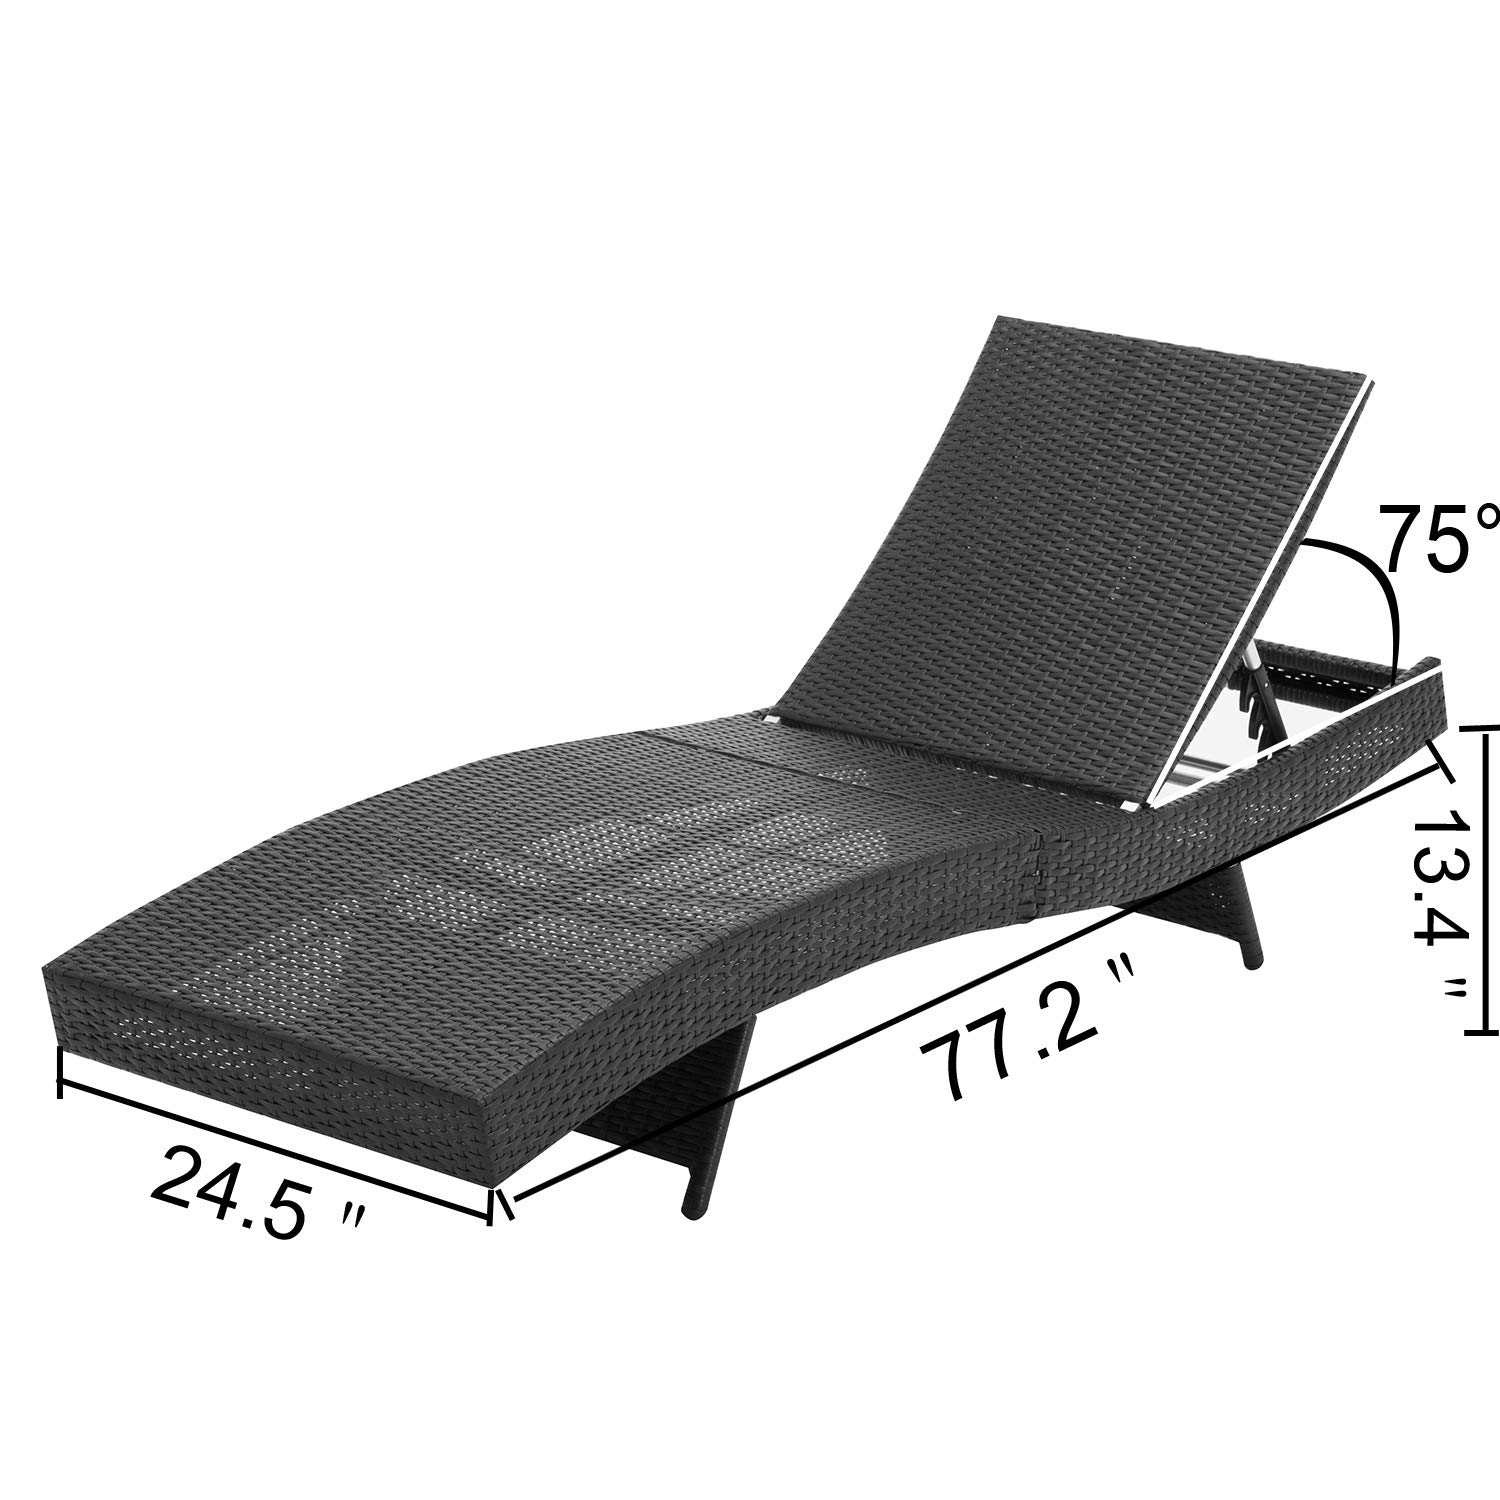 Round Folding Dining Table, 1pc 6085 Mcombo Outdoor All Weather Adjustable Recline Wicker Chaise Lounge Chair Rattan Bed Pool Patio Rust Rust Free Aluminum Lounge Chairs Patio Lawn Garden